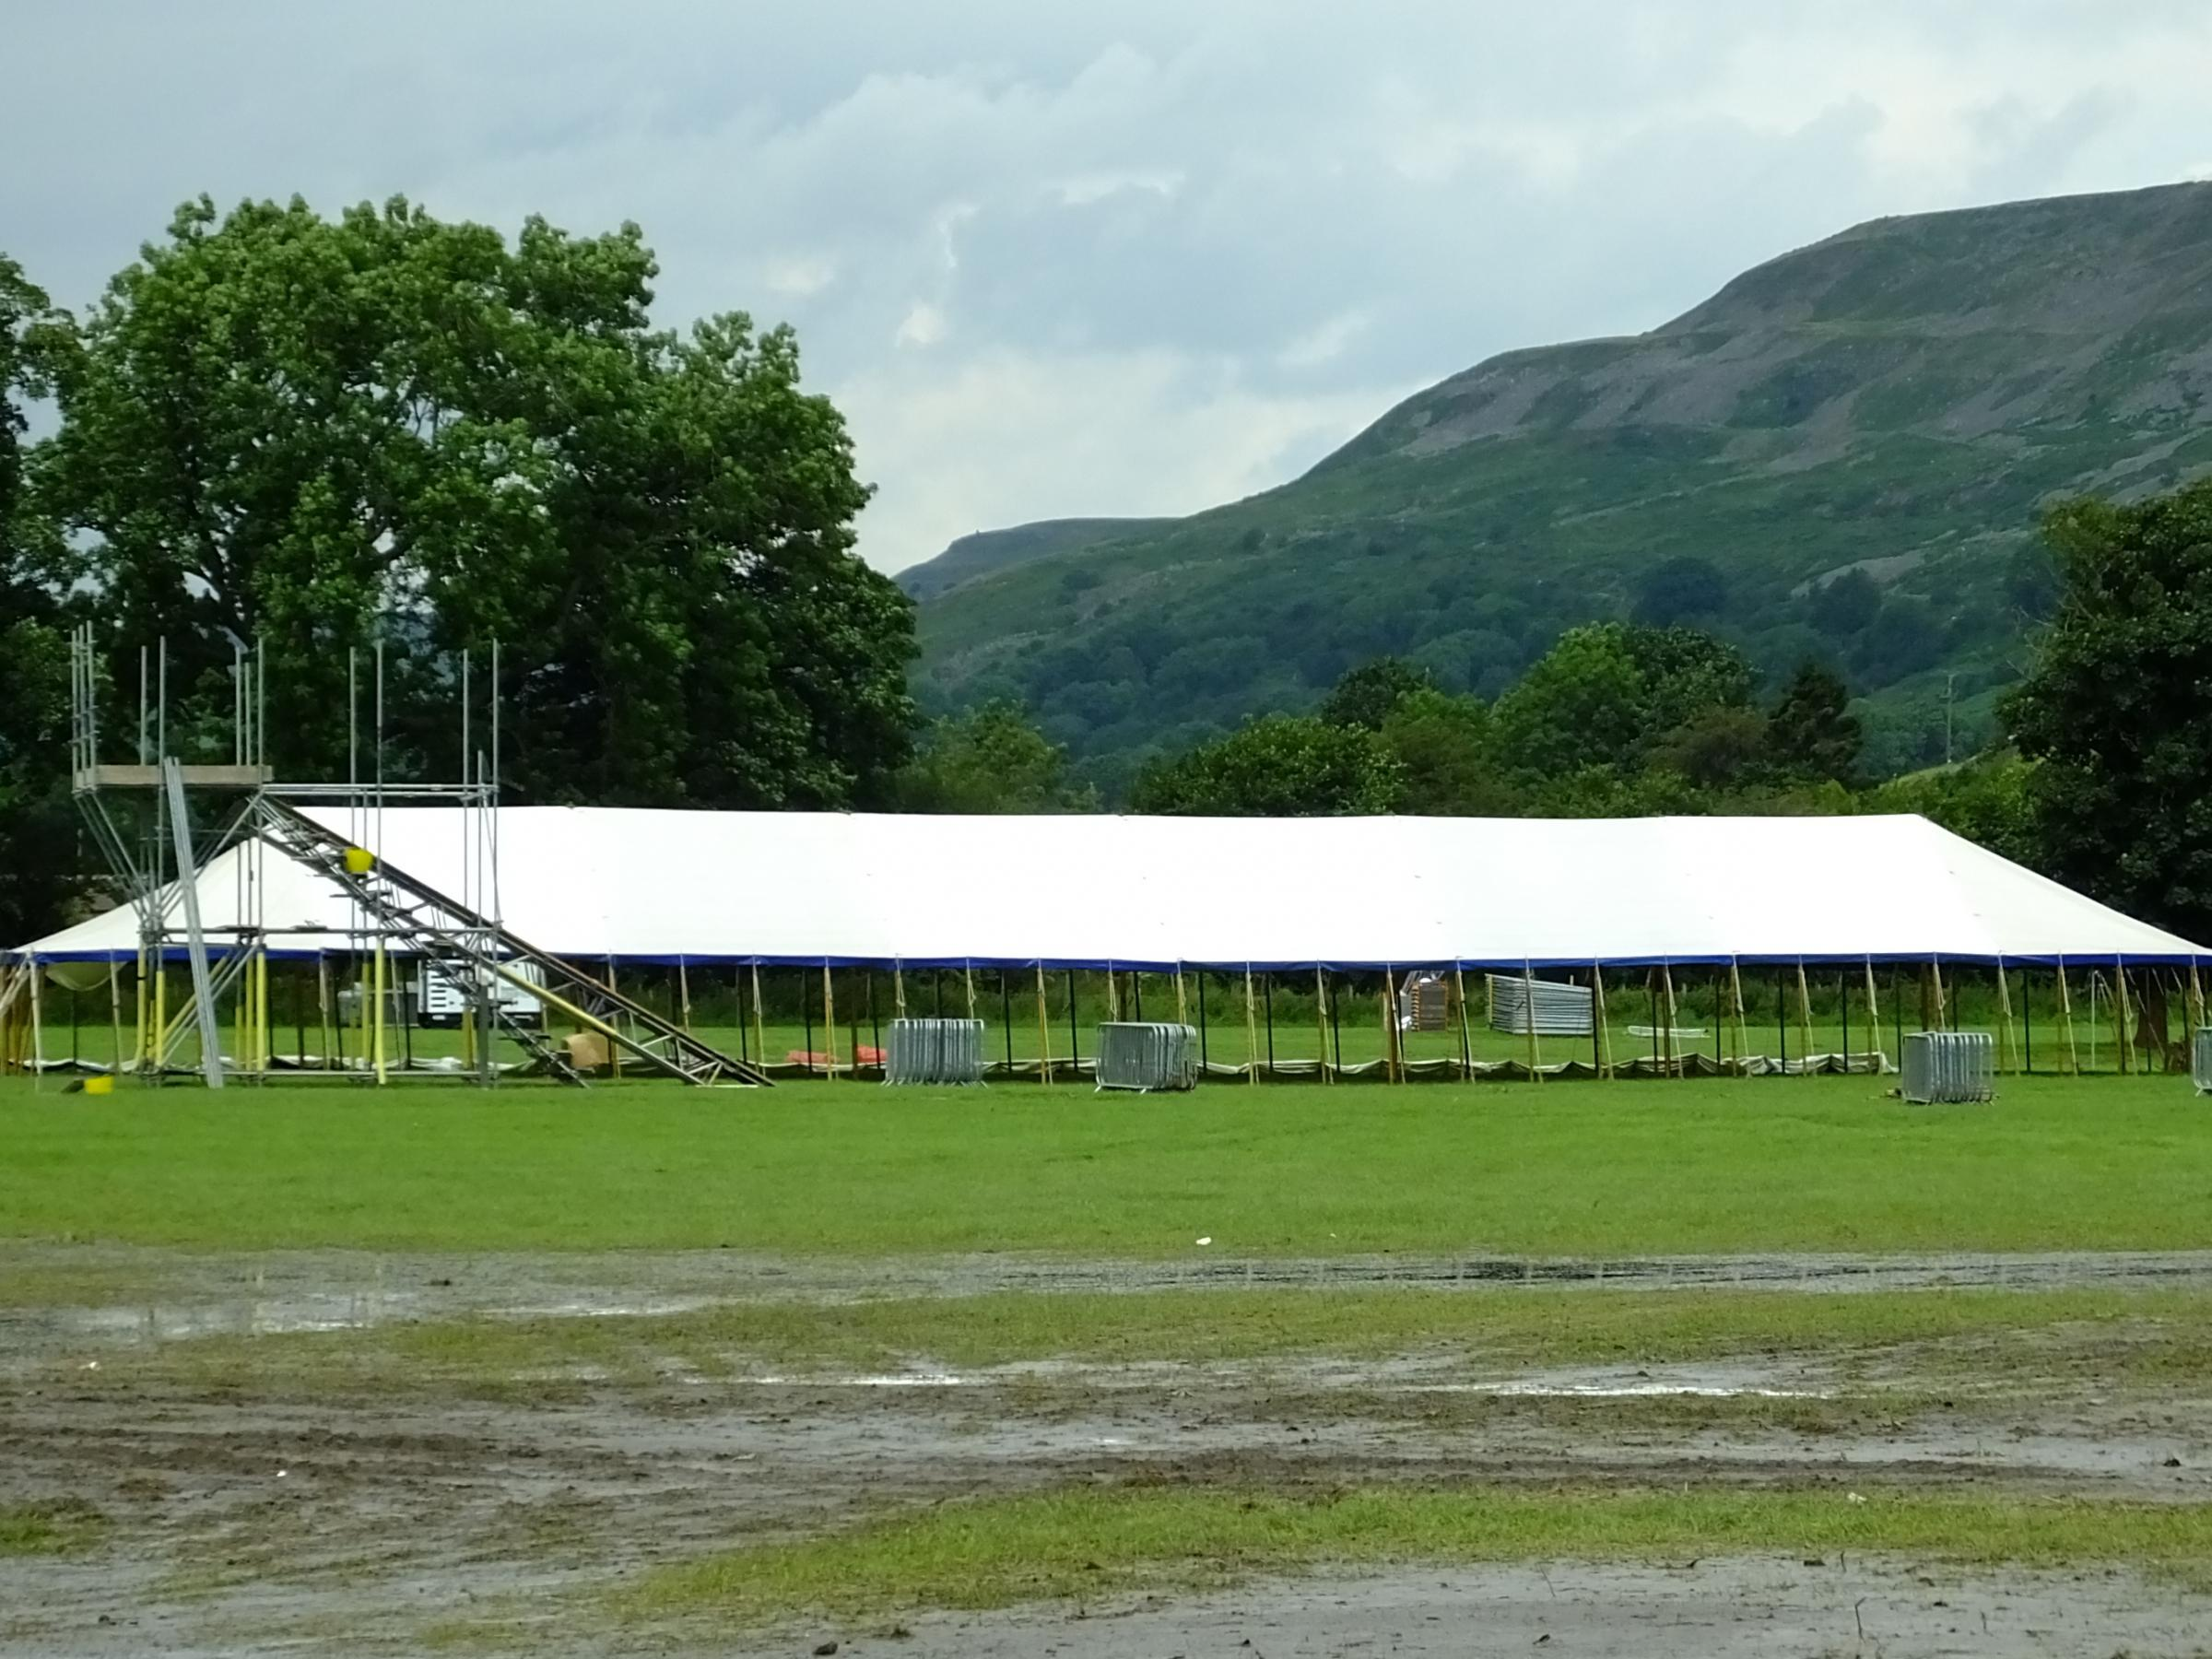 Reeth and Wensleydale agricultural shows go ahead despite recent flooding